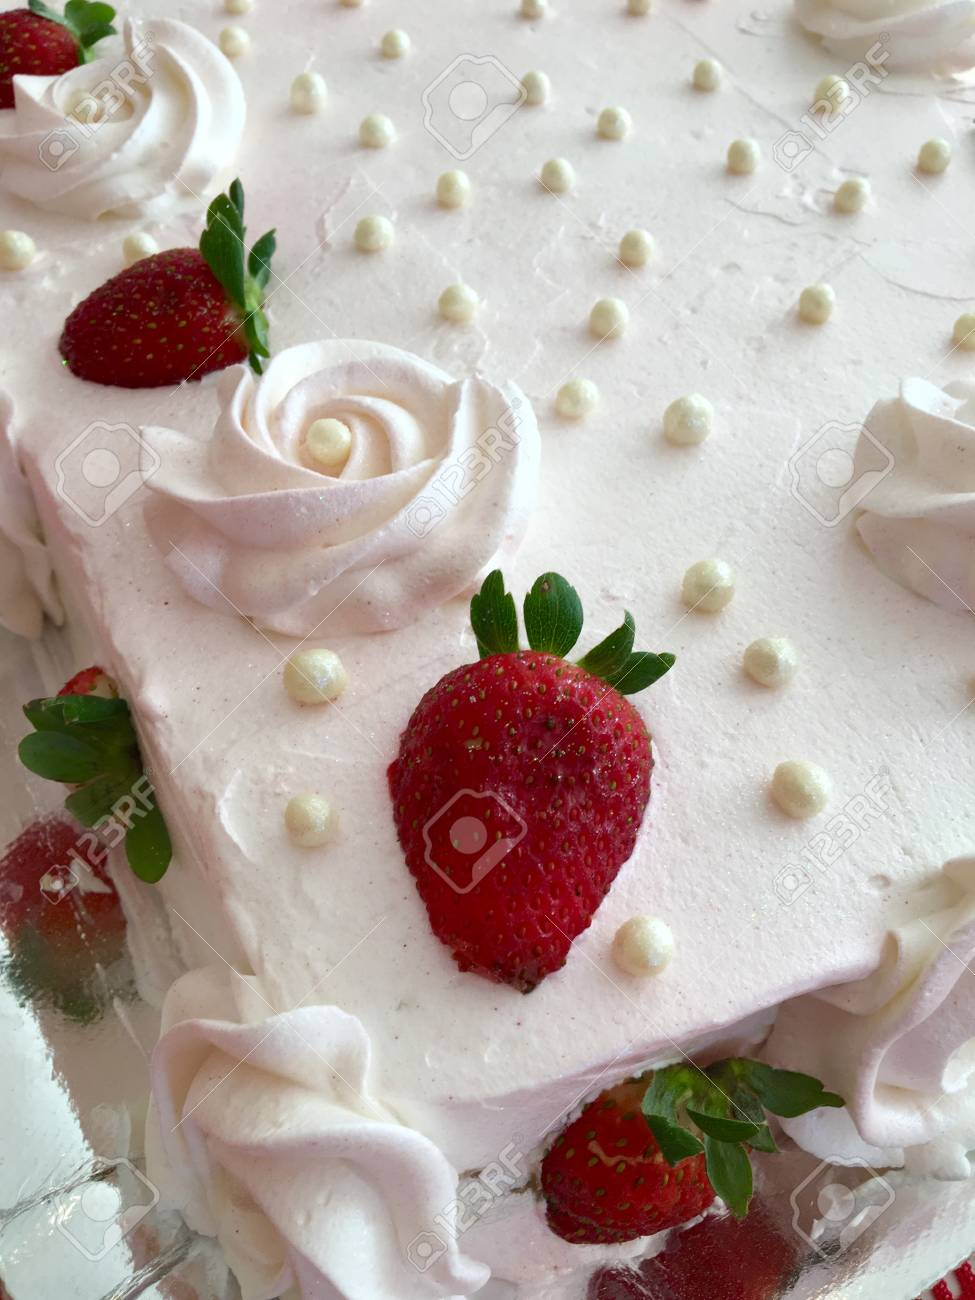 Detail Of A Cake With Decorated Topping And Fresh Strawberries